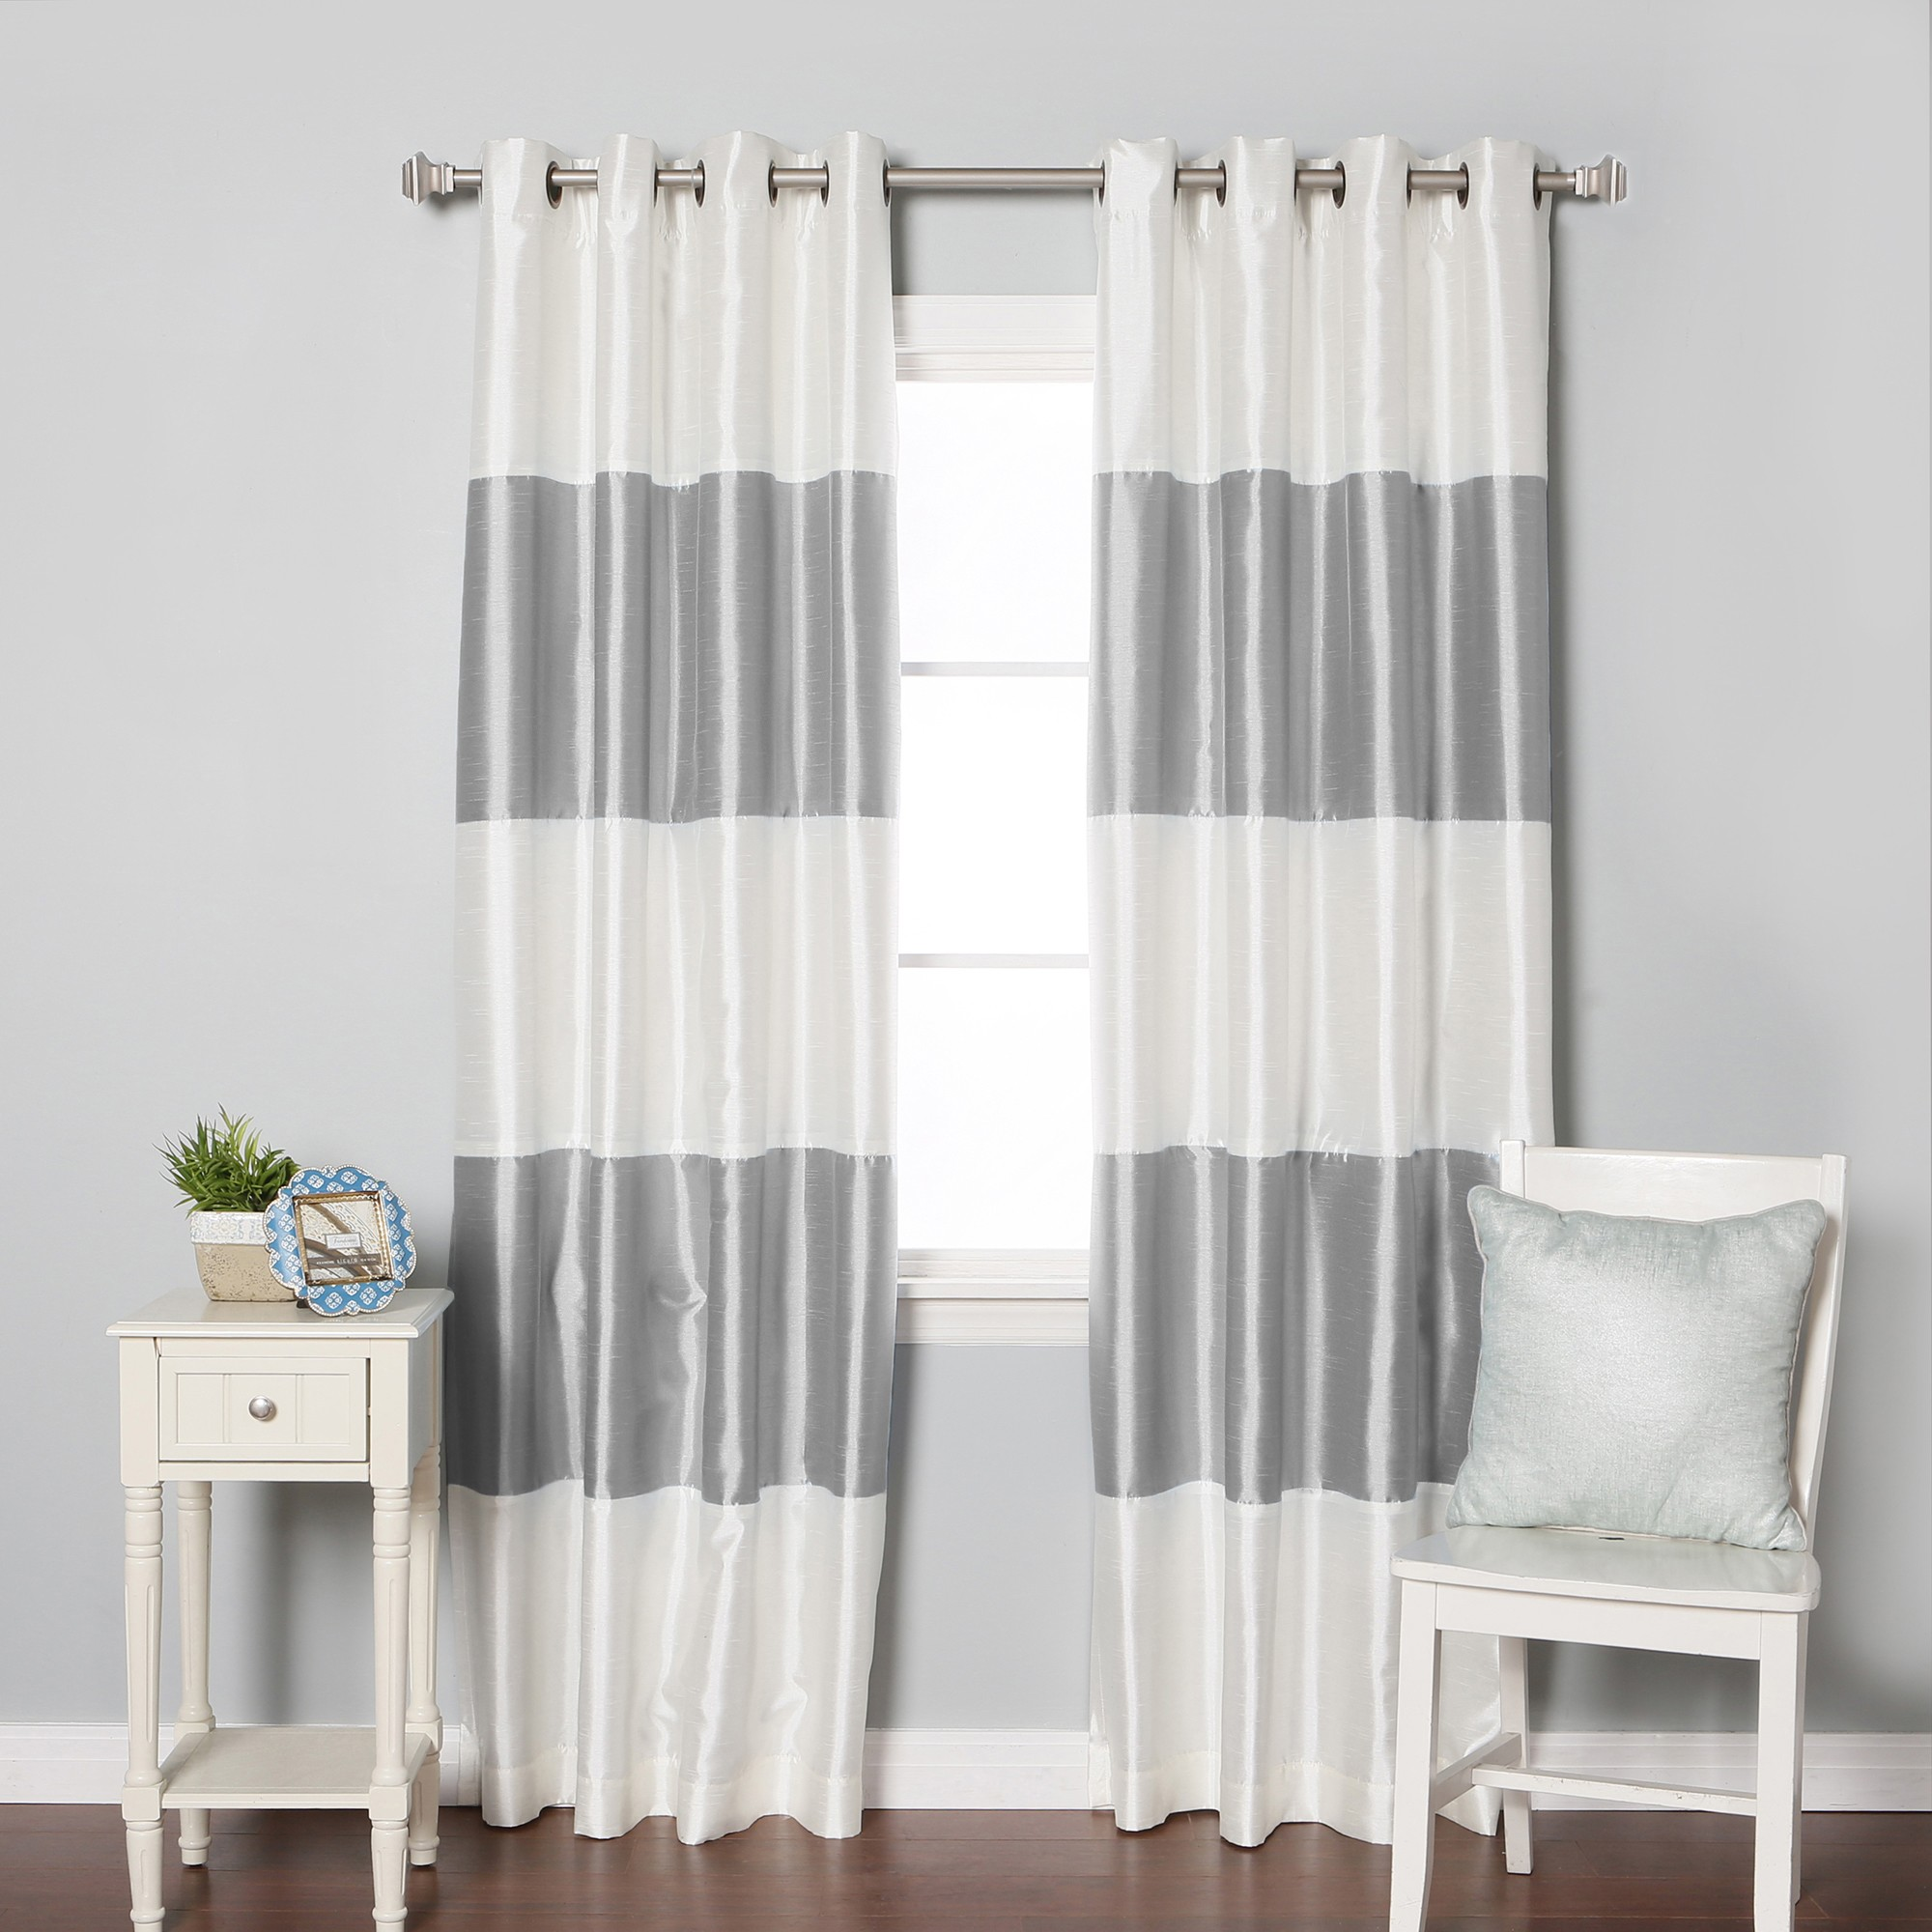 Image of: Blackout Curtains Ideas Design